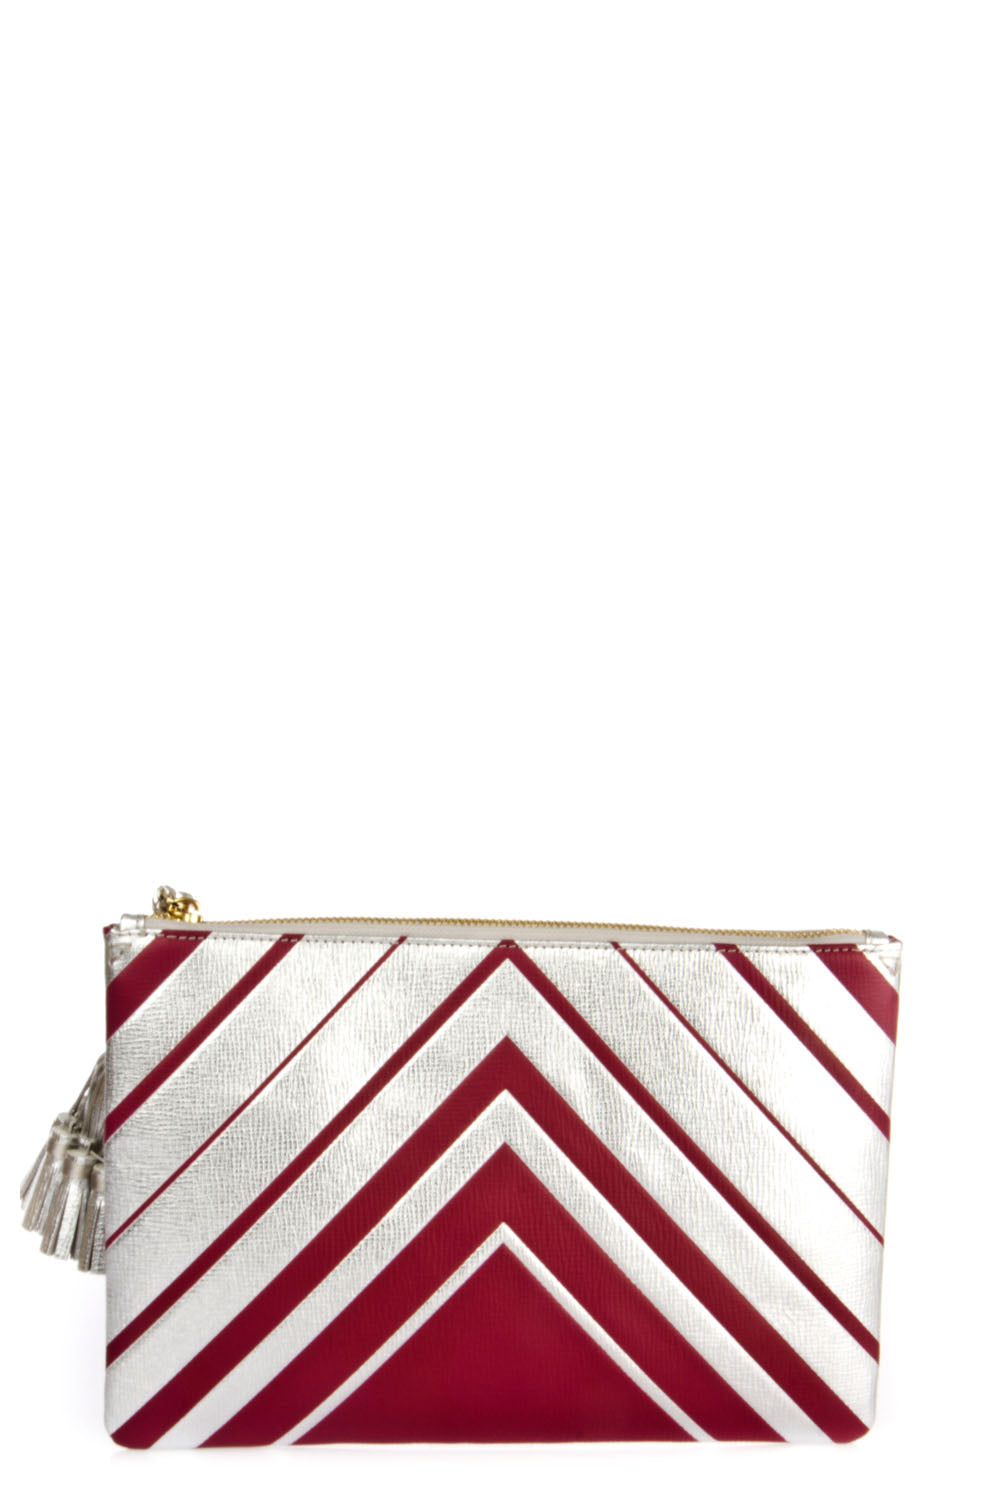 ANYA HINDMARCH DIAMOND GEORGIANA CLUTCH